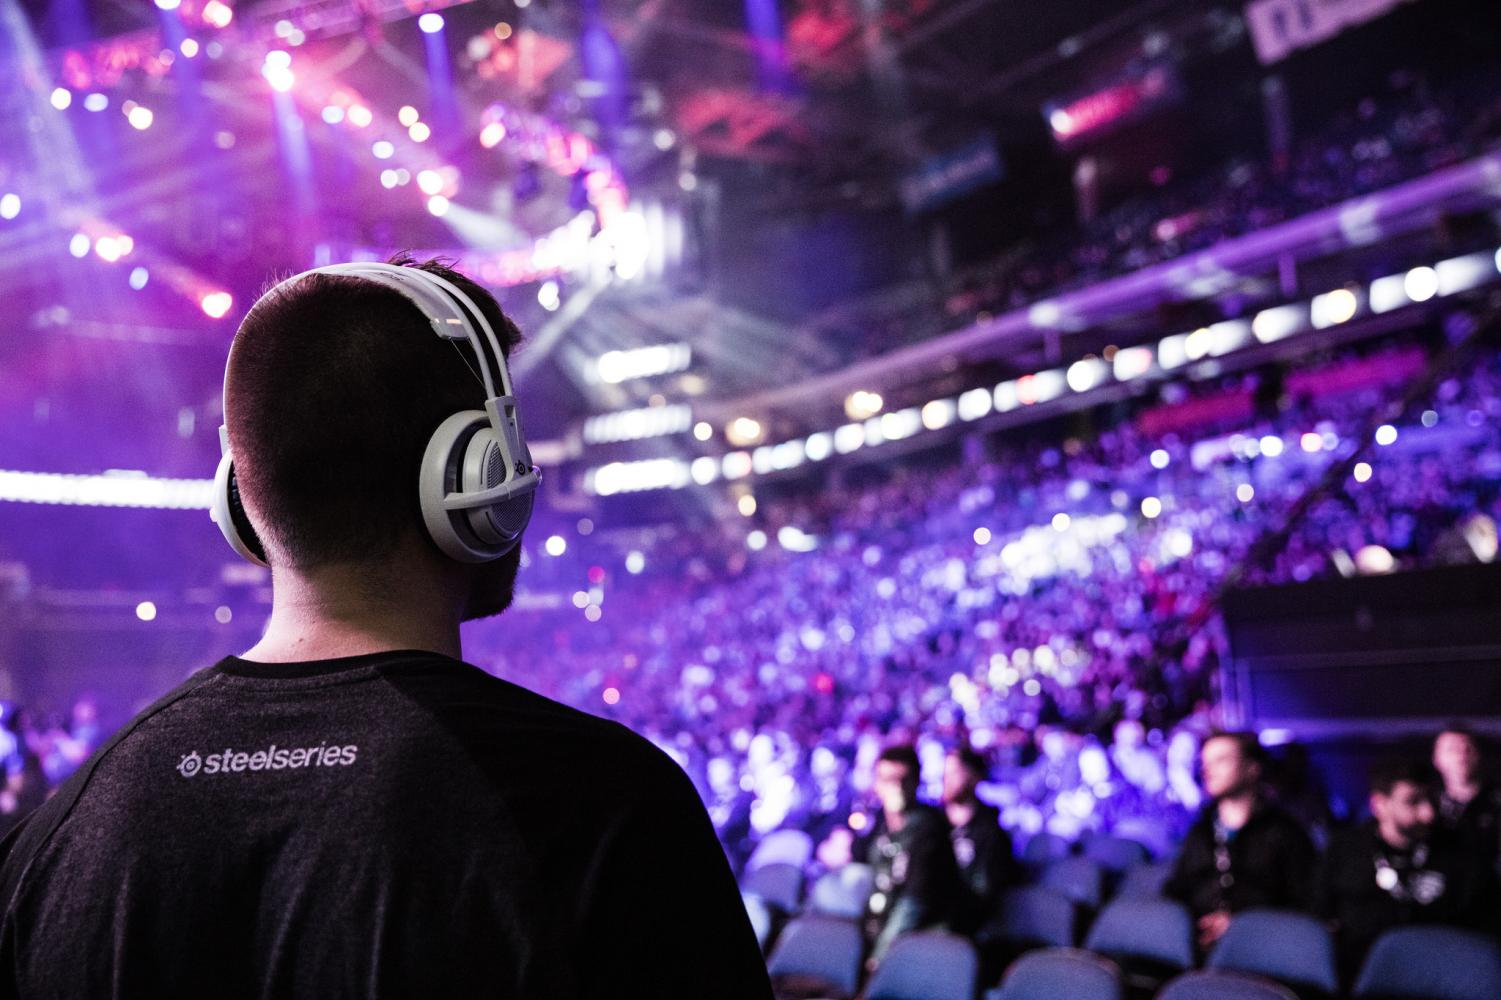 The universe of esports mirrors that of popular physical sports; in both there are competition, prize money and a large fanbase. However, the key element of esports scholarships remains largely overlooked by higher education institutions, inhibiting the growth of this sector of spectator sports.